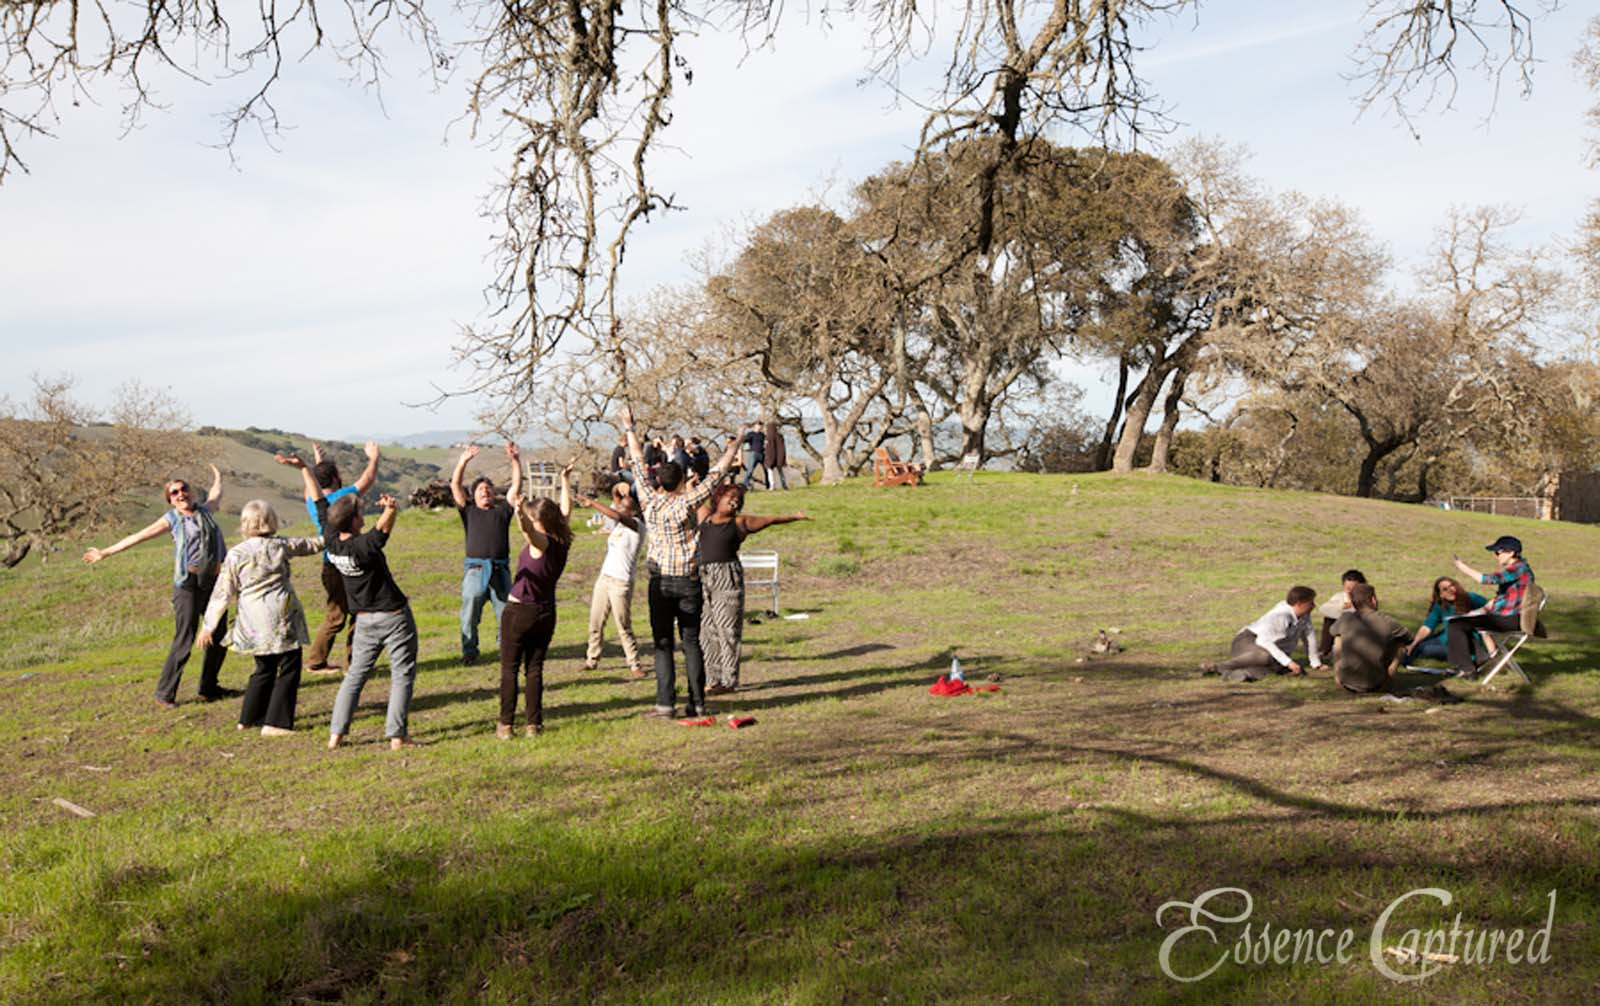 people participating in retreat activities outdoors at Earthrise Petalumn